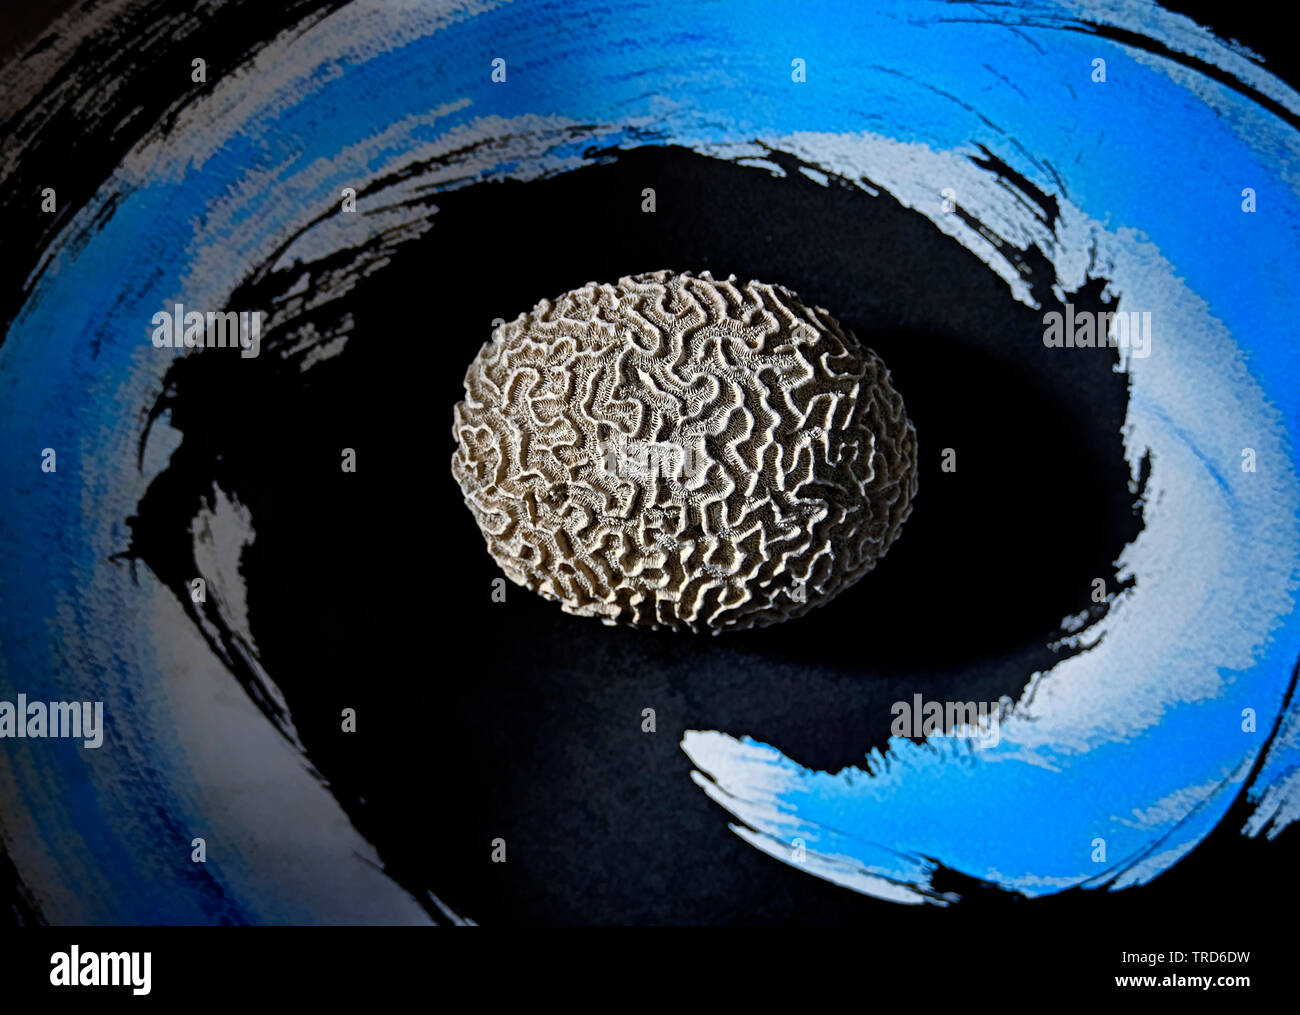 STILL LIFE PHOTO WITH BRAIN CORAL ON WATER COLOR PAINTING - Stock Image